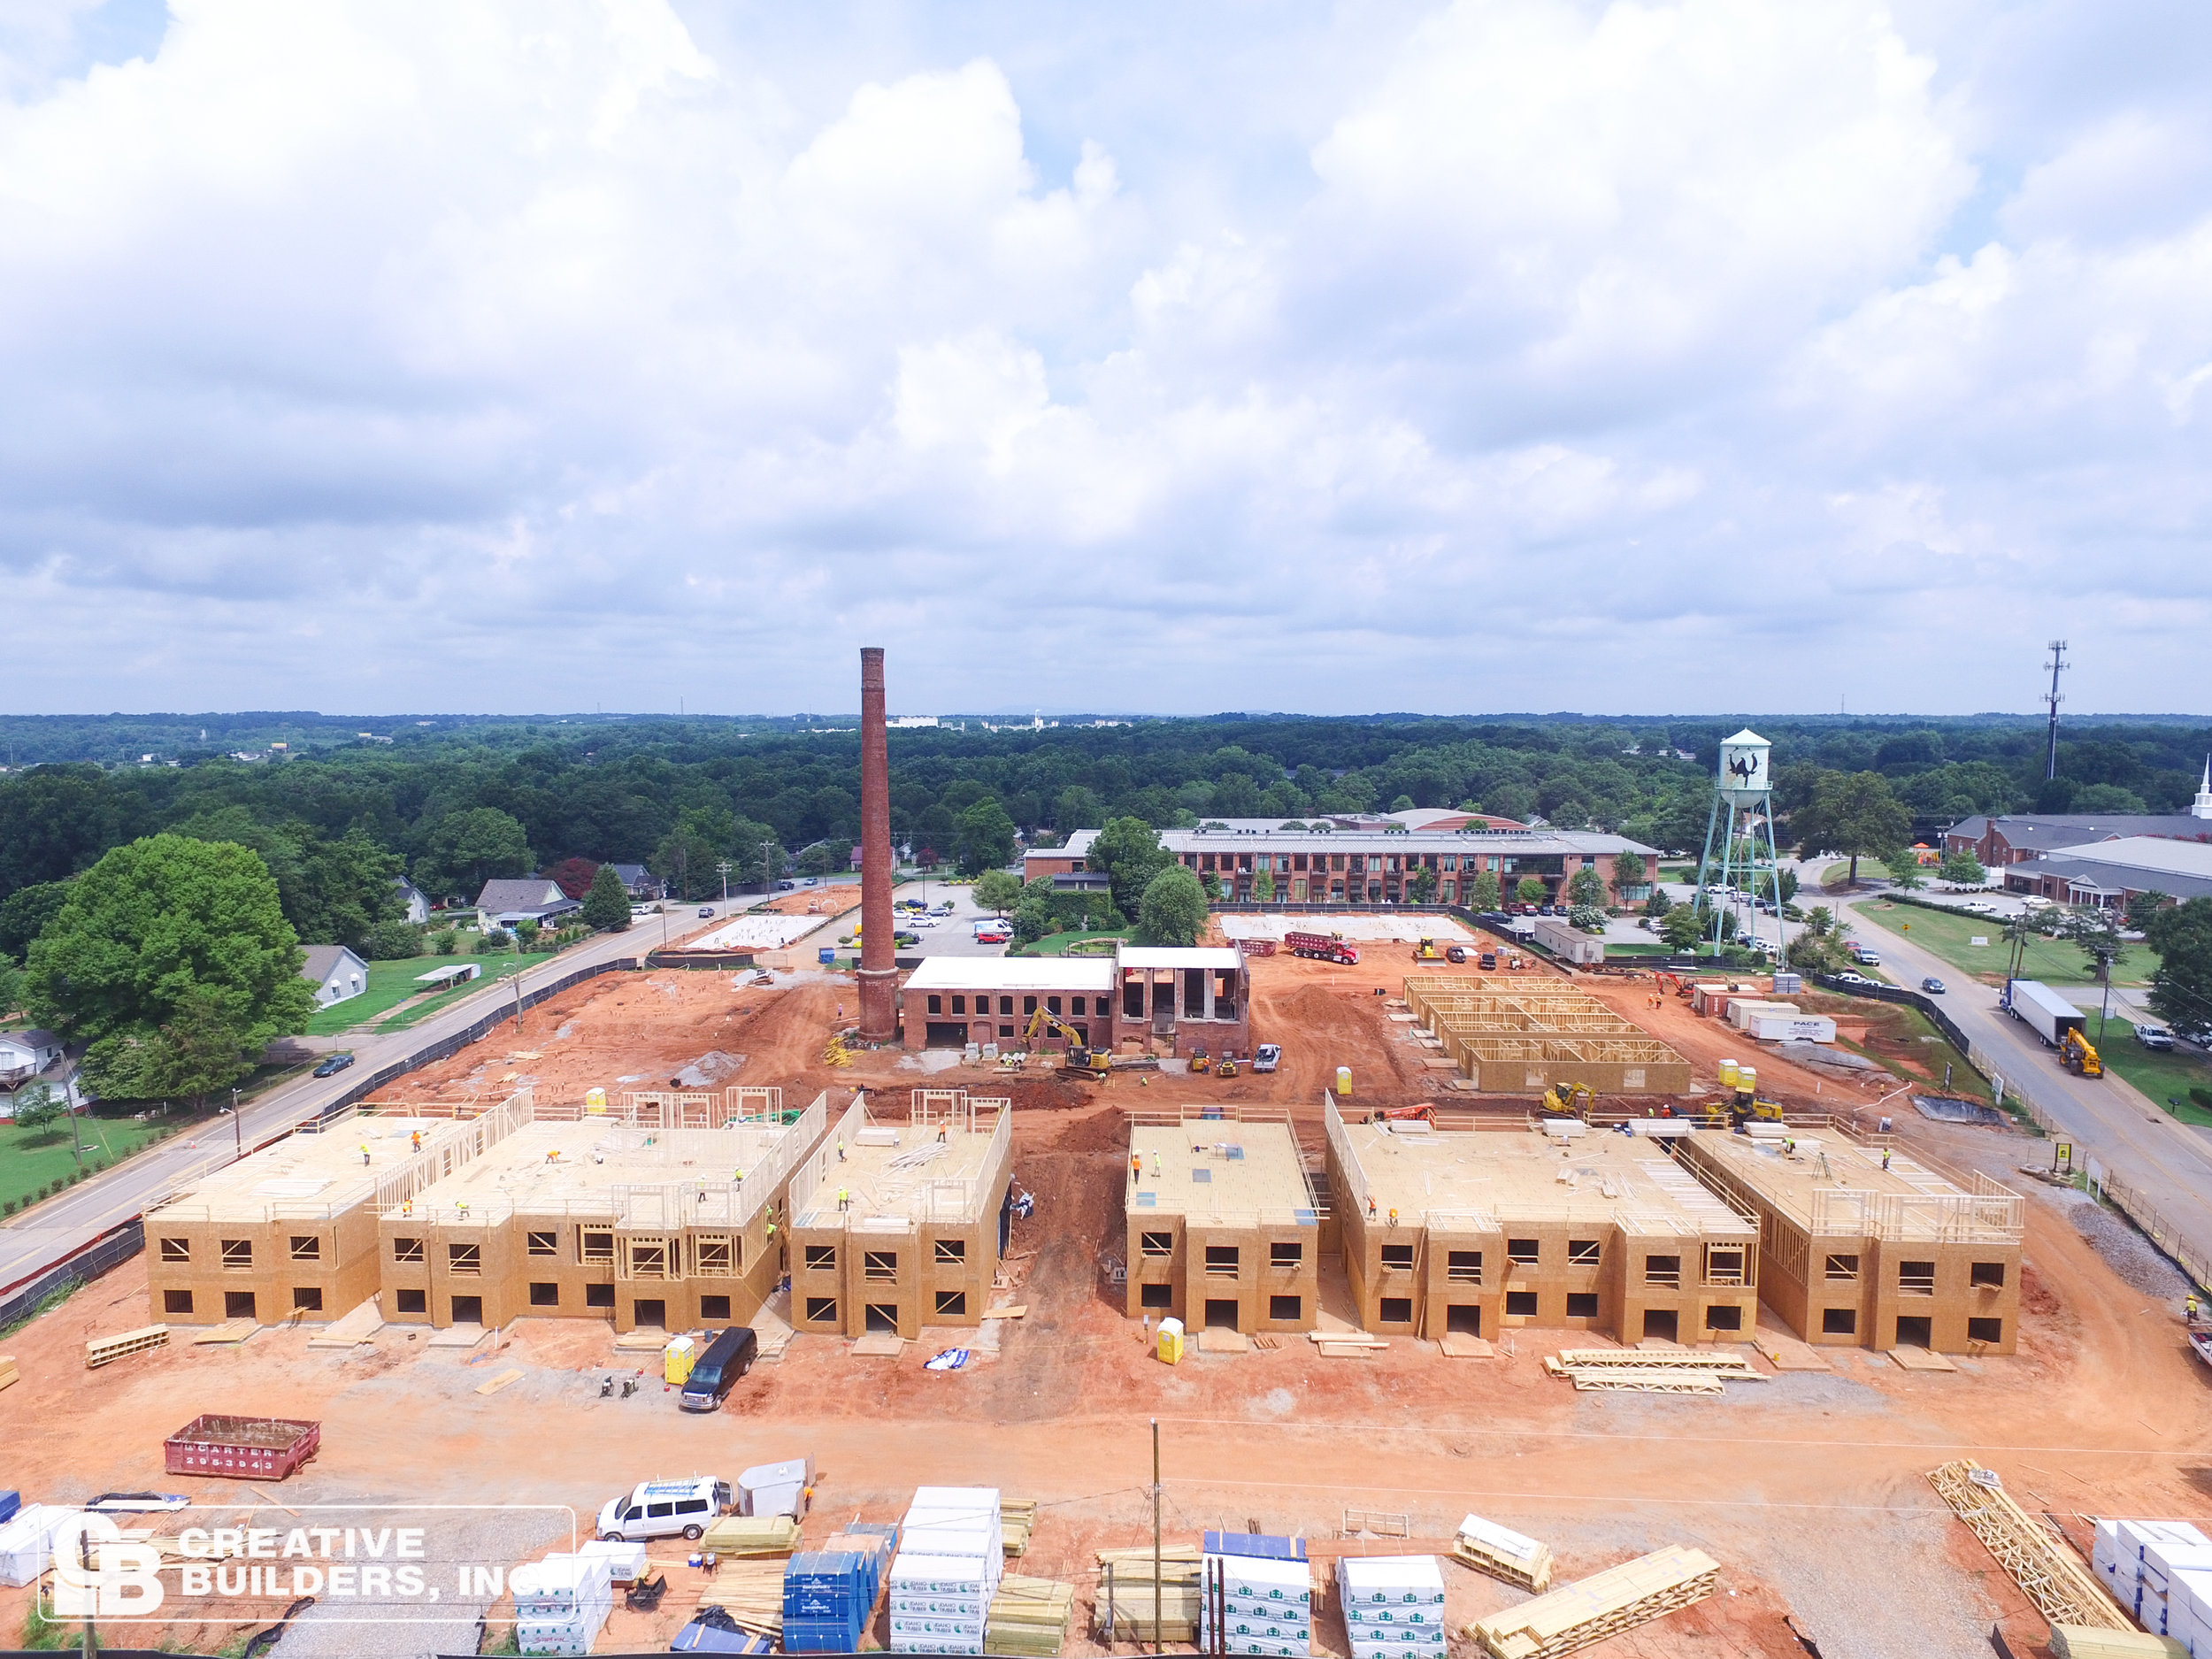 cotton-mill-2018-07-16-3.jpg